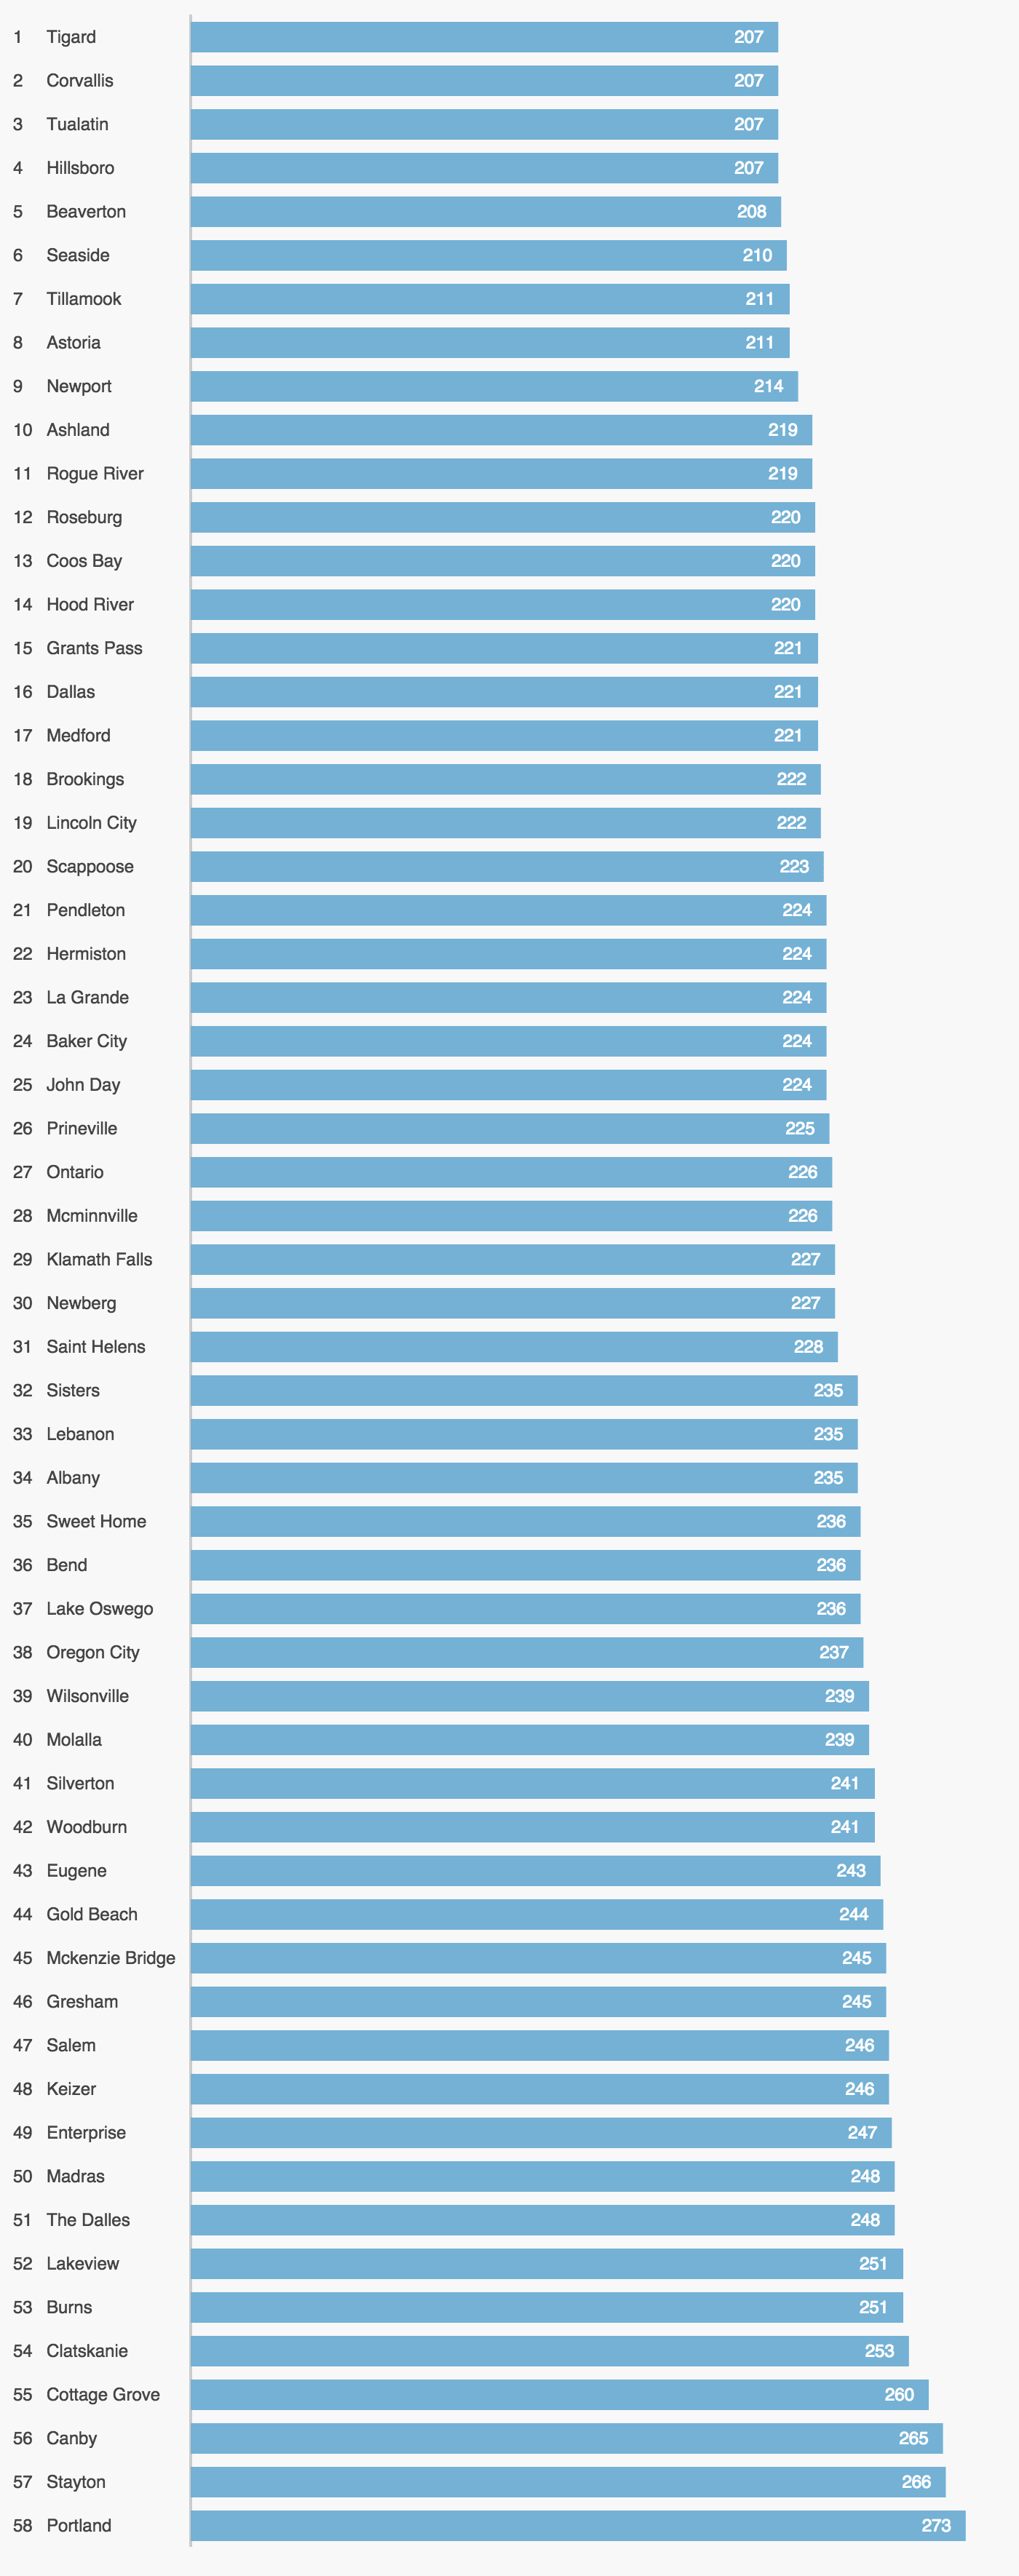 ... Most Expensive Premiums Is Not A Dramatic One. For Example, The Most  Expensive City In Delaware Is Only 7% More Expensive That The Cheapest, ...